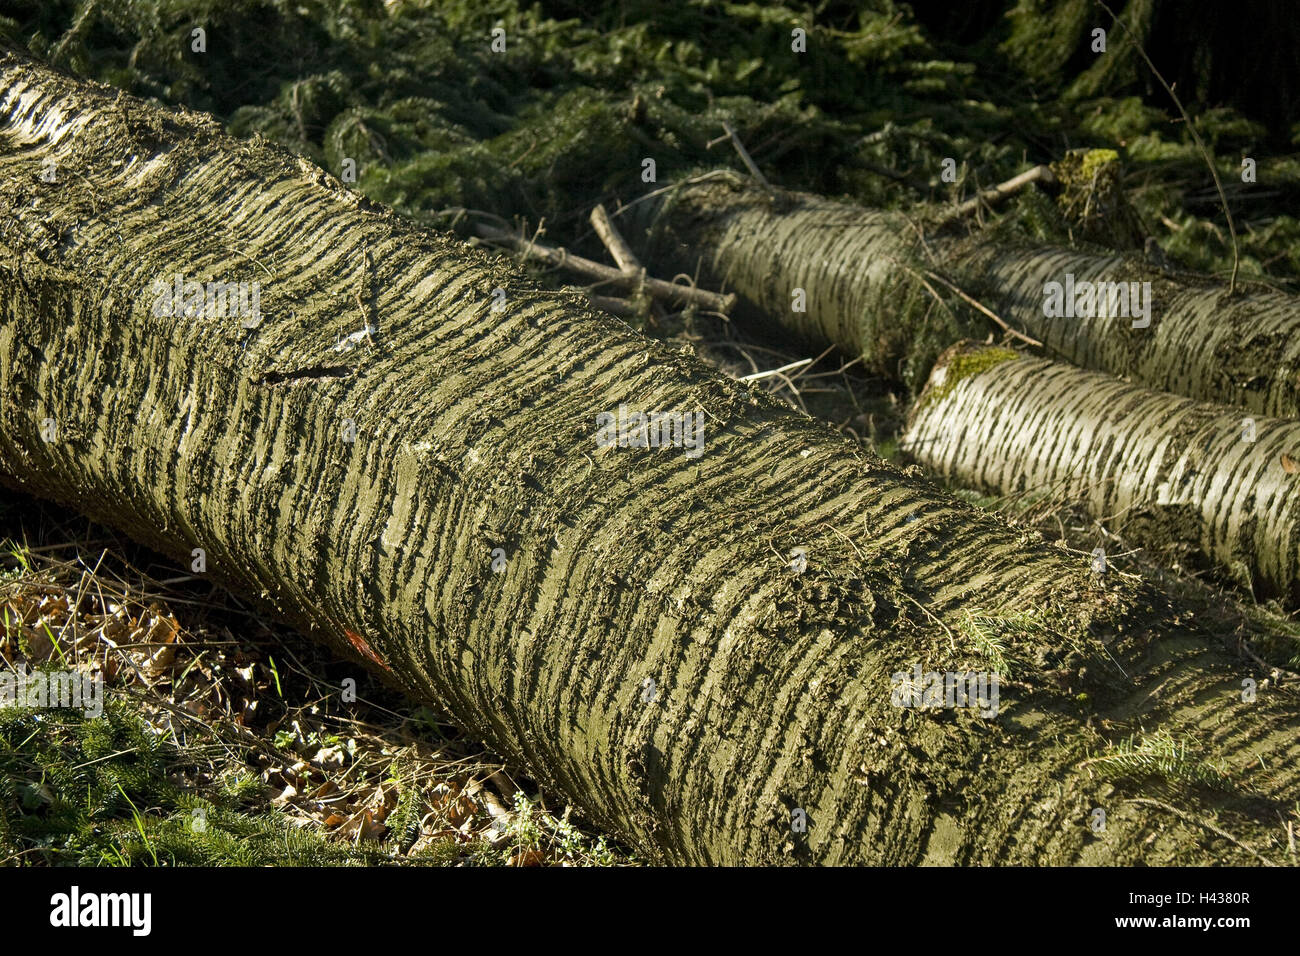 Forest floor, conifer, likes, detail, strain, wood, tree, trunk, lie, crust, crust structure, tree bark, bark, twigs, - Stock Image